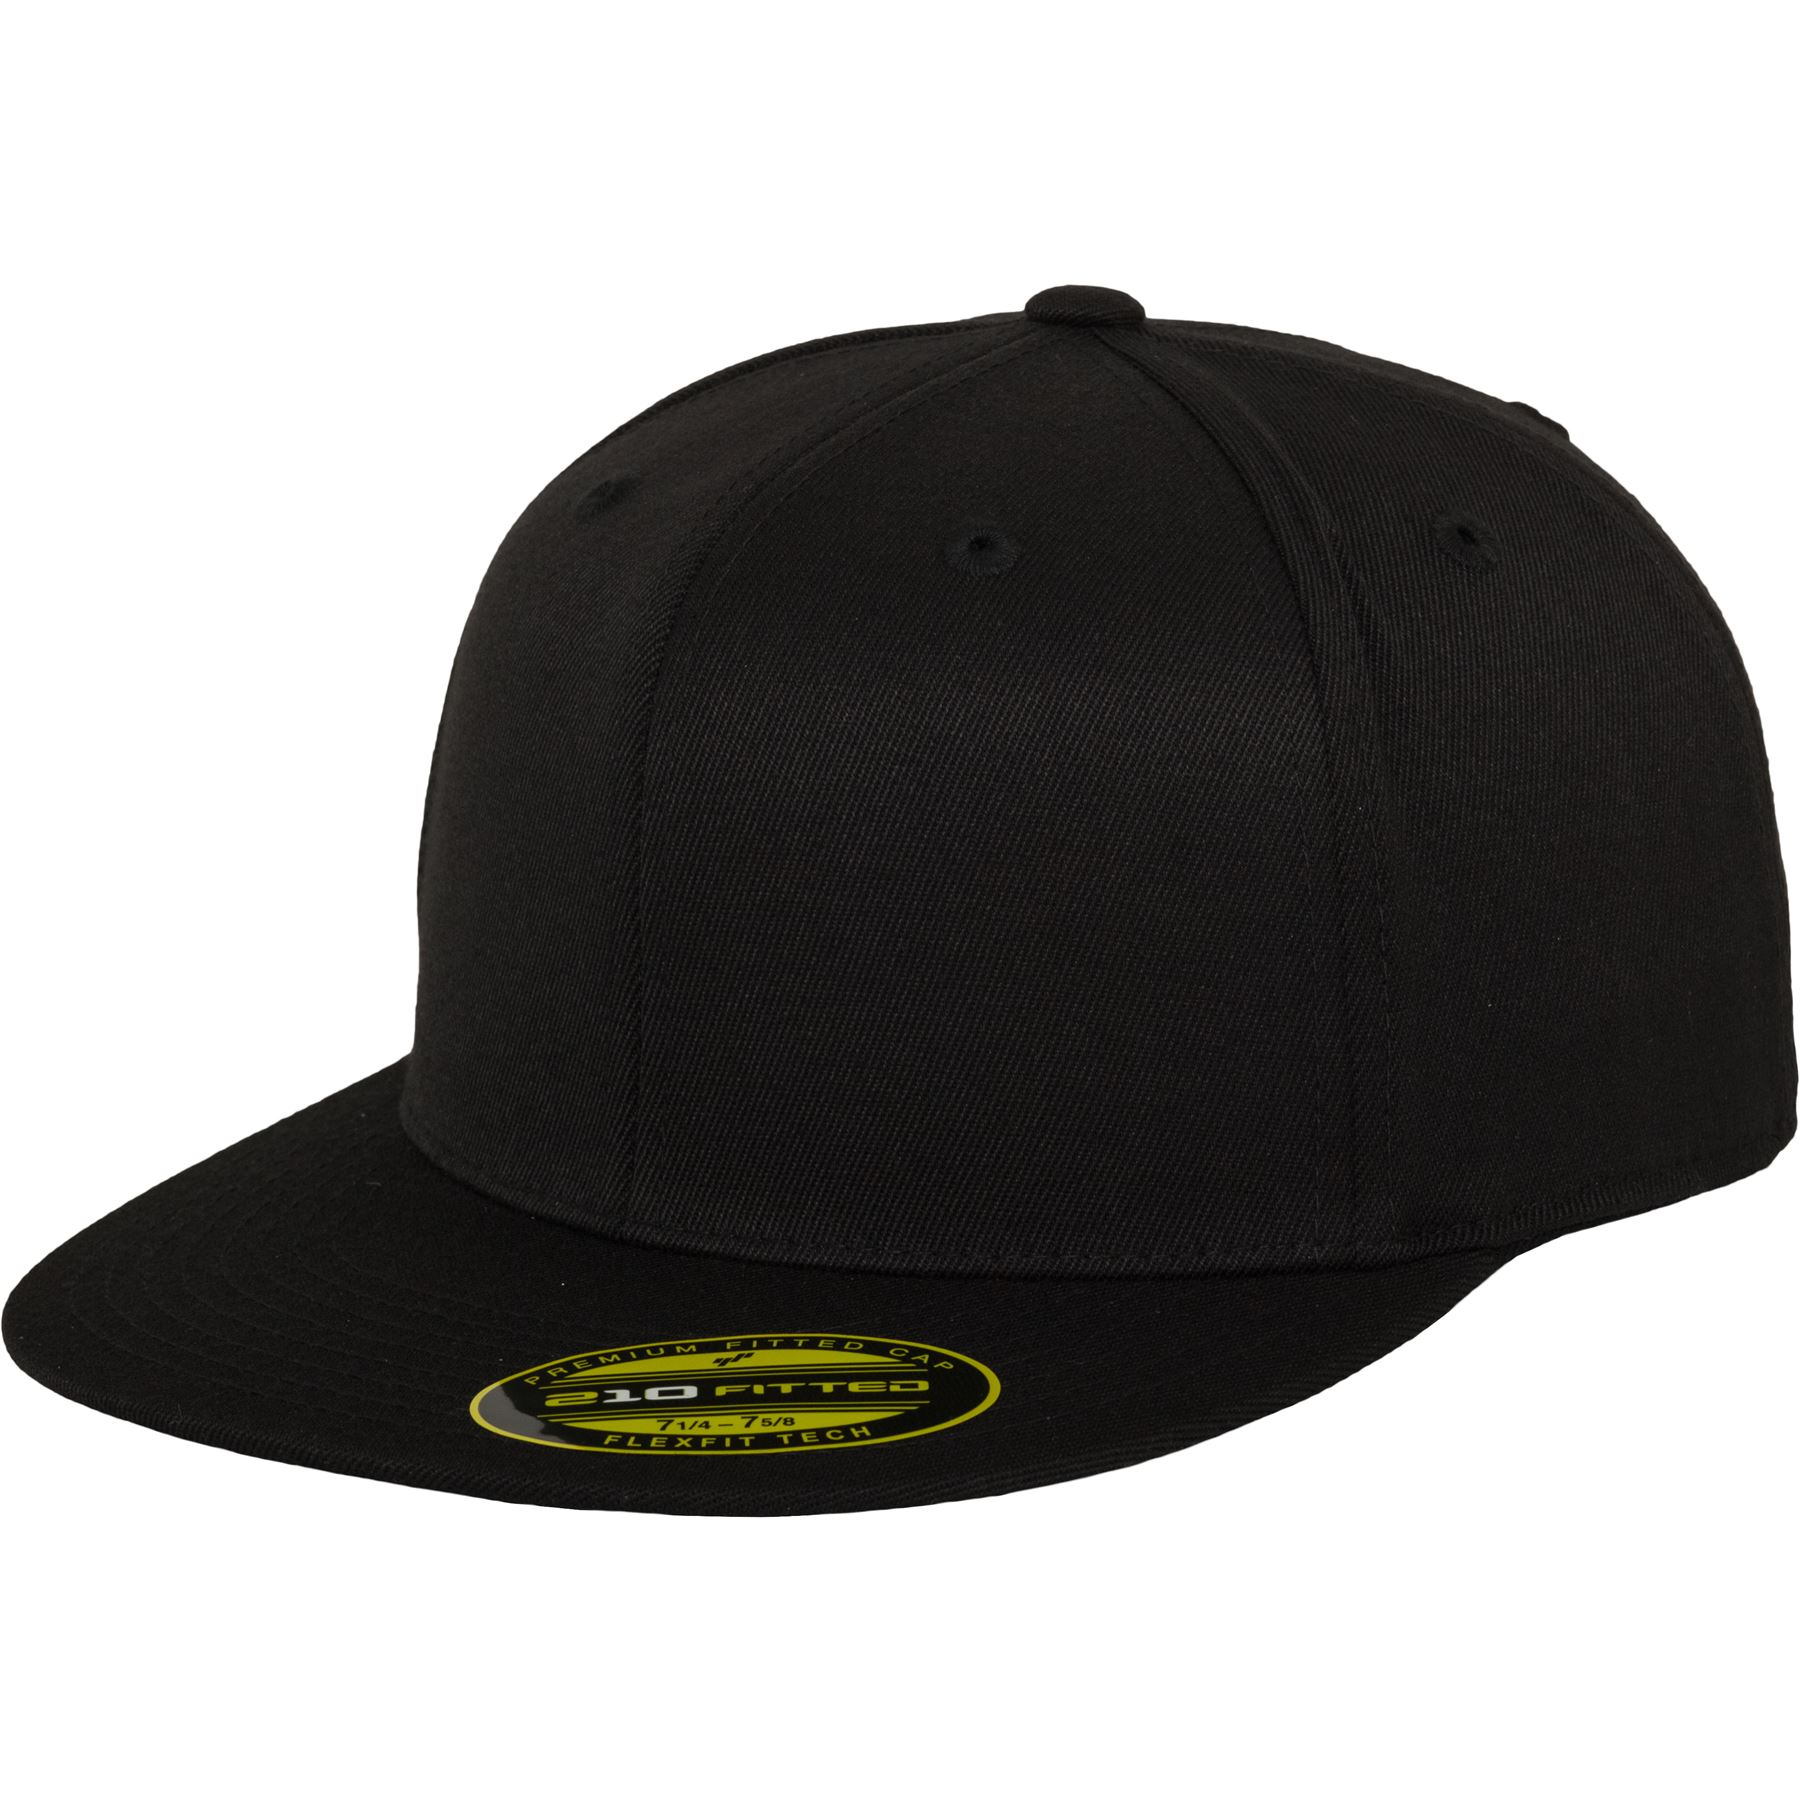 flexfit by yupoong headwear baseball caps premium 210 fitted cap ebay. Black Bedroom Furniture Sets. Home Design Ideas